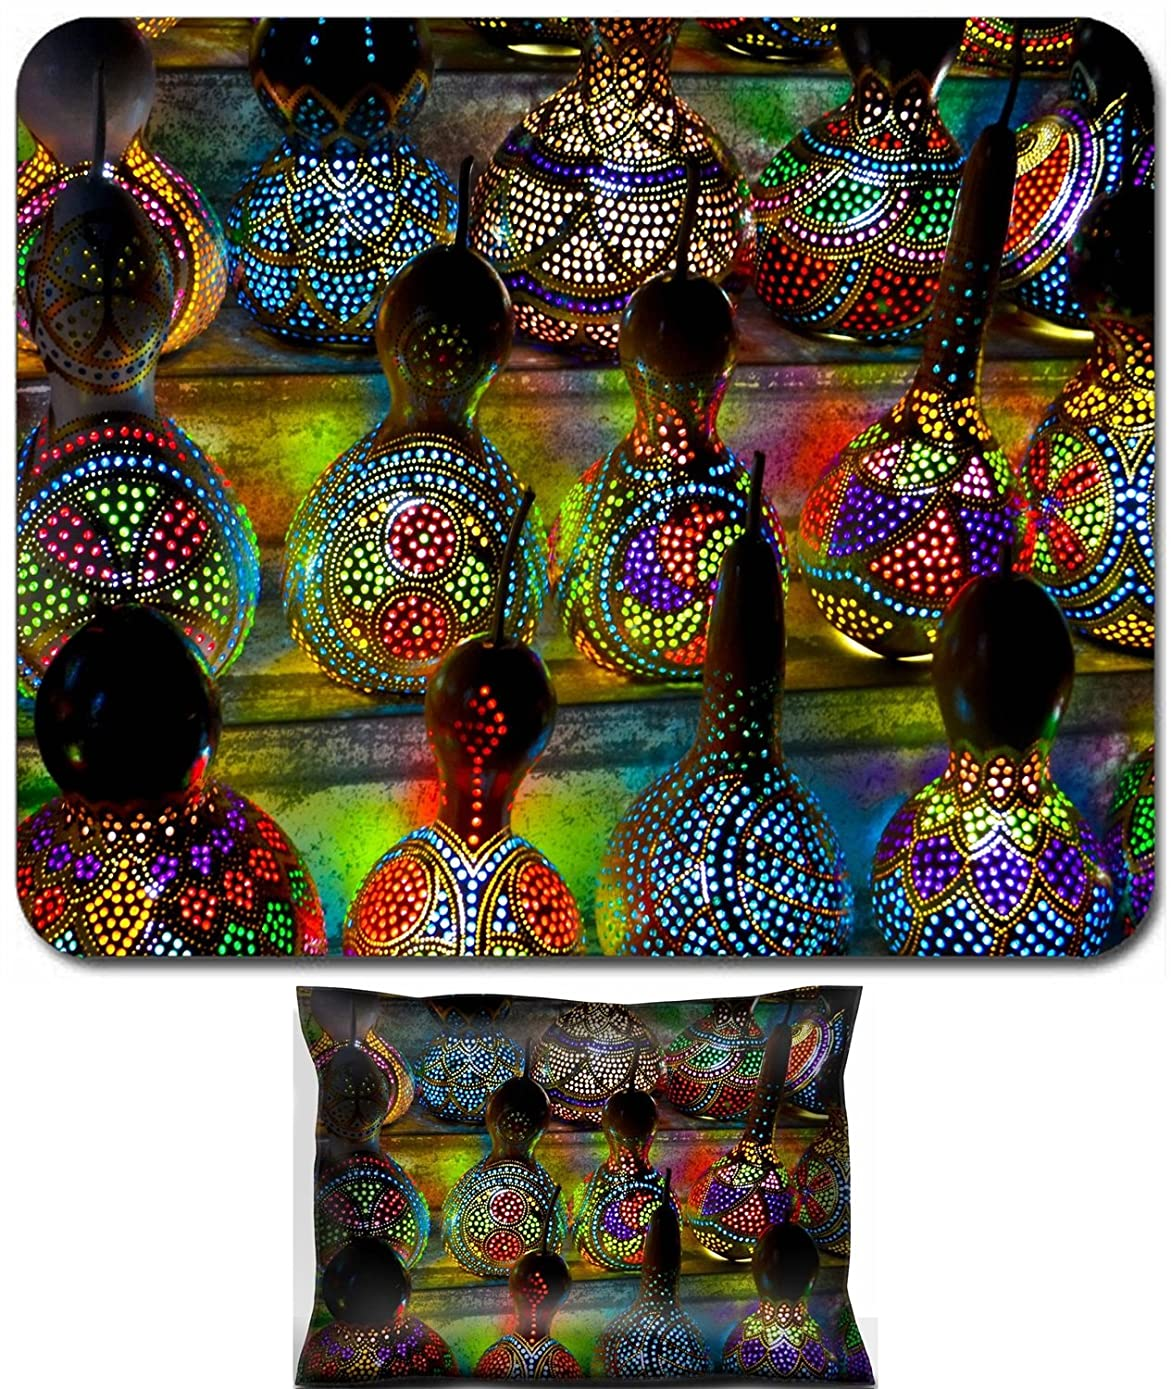 Luxlady Mouse Wrist Rest and Small Mousepad Set, 2pc Wrist Support design IMAGE: 22182795 Turkish Lamps at the Market in Istanbul Turkey